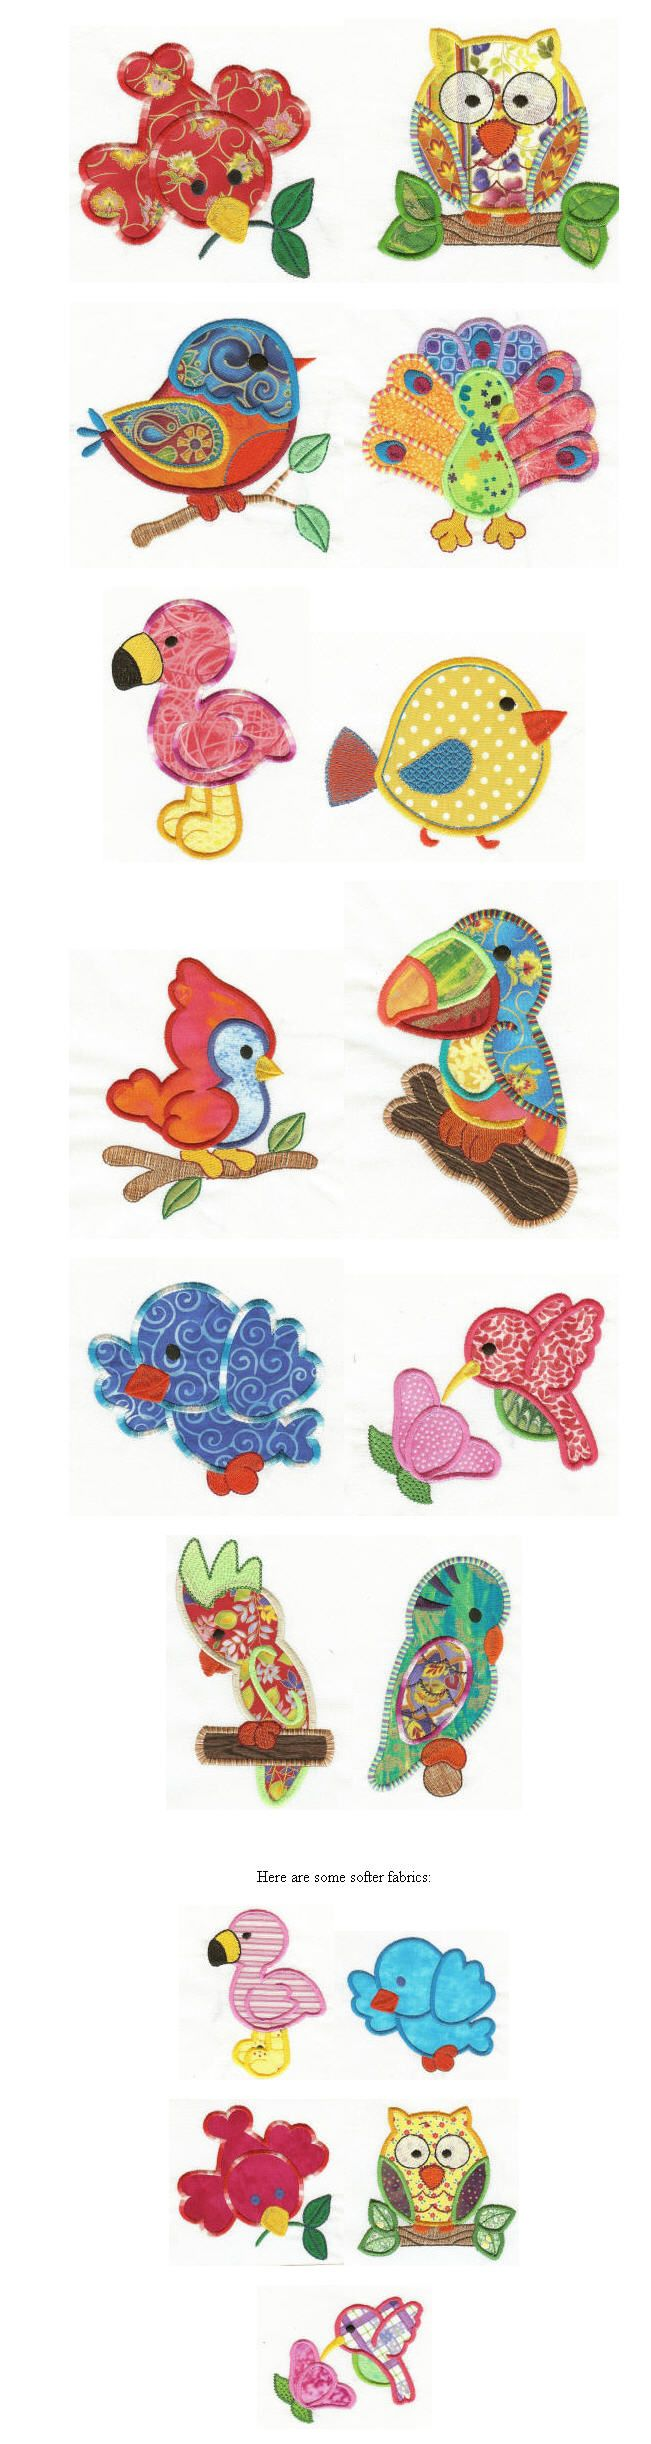 Embroidery | Free machine embroidery designs | Birds of a Feather Applique: